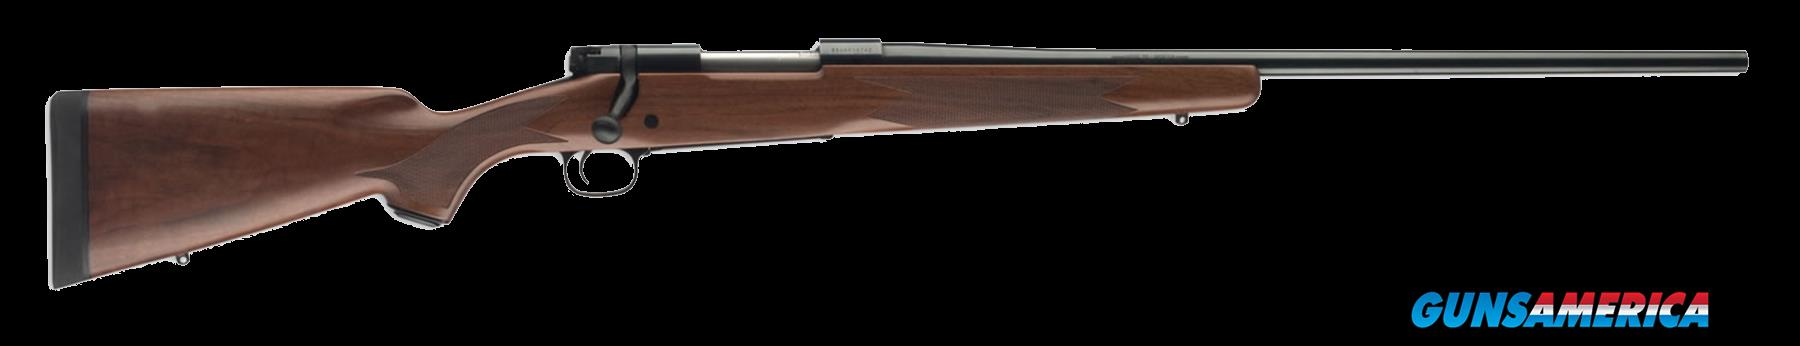 "Winchester Guns 535202230 70 Sporter Bolt 7mm Rem Mag 26"" 5+1 Grade I Walnut Stk Blued  Guns > Rifles > Winchester Rifles - Modern Bolt/Auto/Single > Model 70 > Post-64"